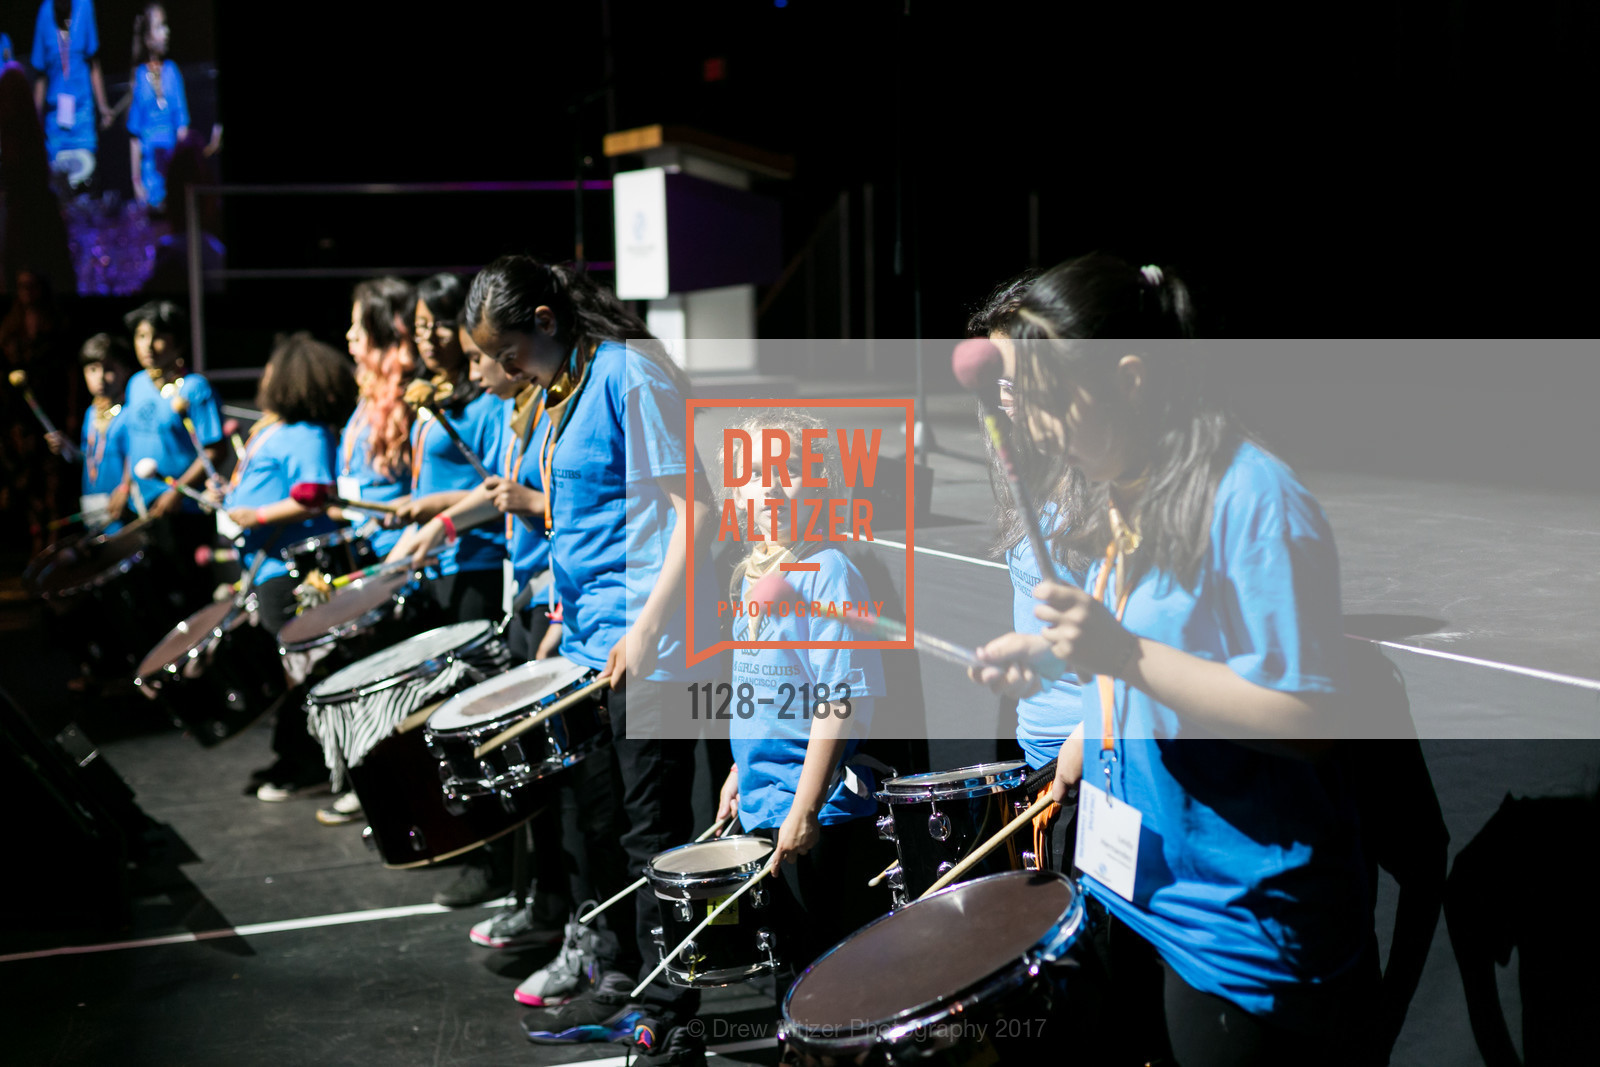 Drumline Performers, Photo #1128-2183